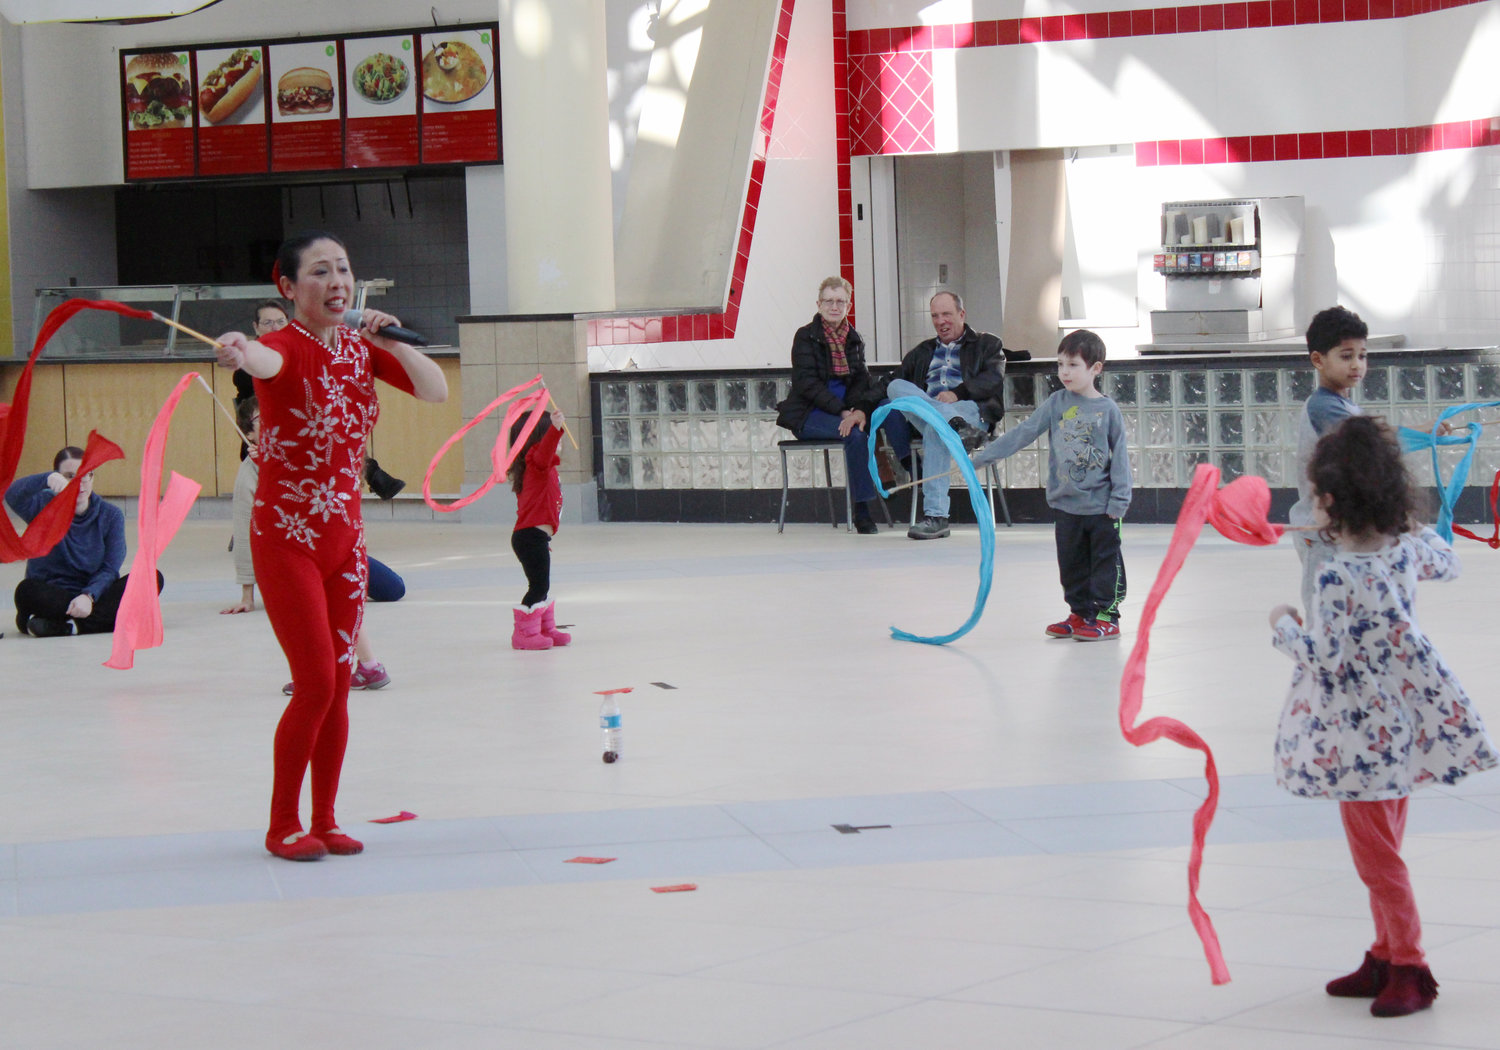 A group of children in attendance were able to test out their ribbon dancing skills under the direction of Li Liu.